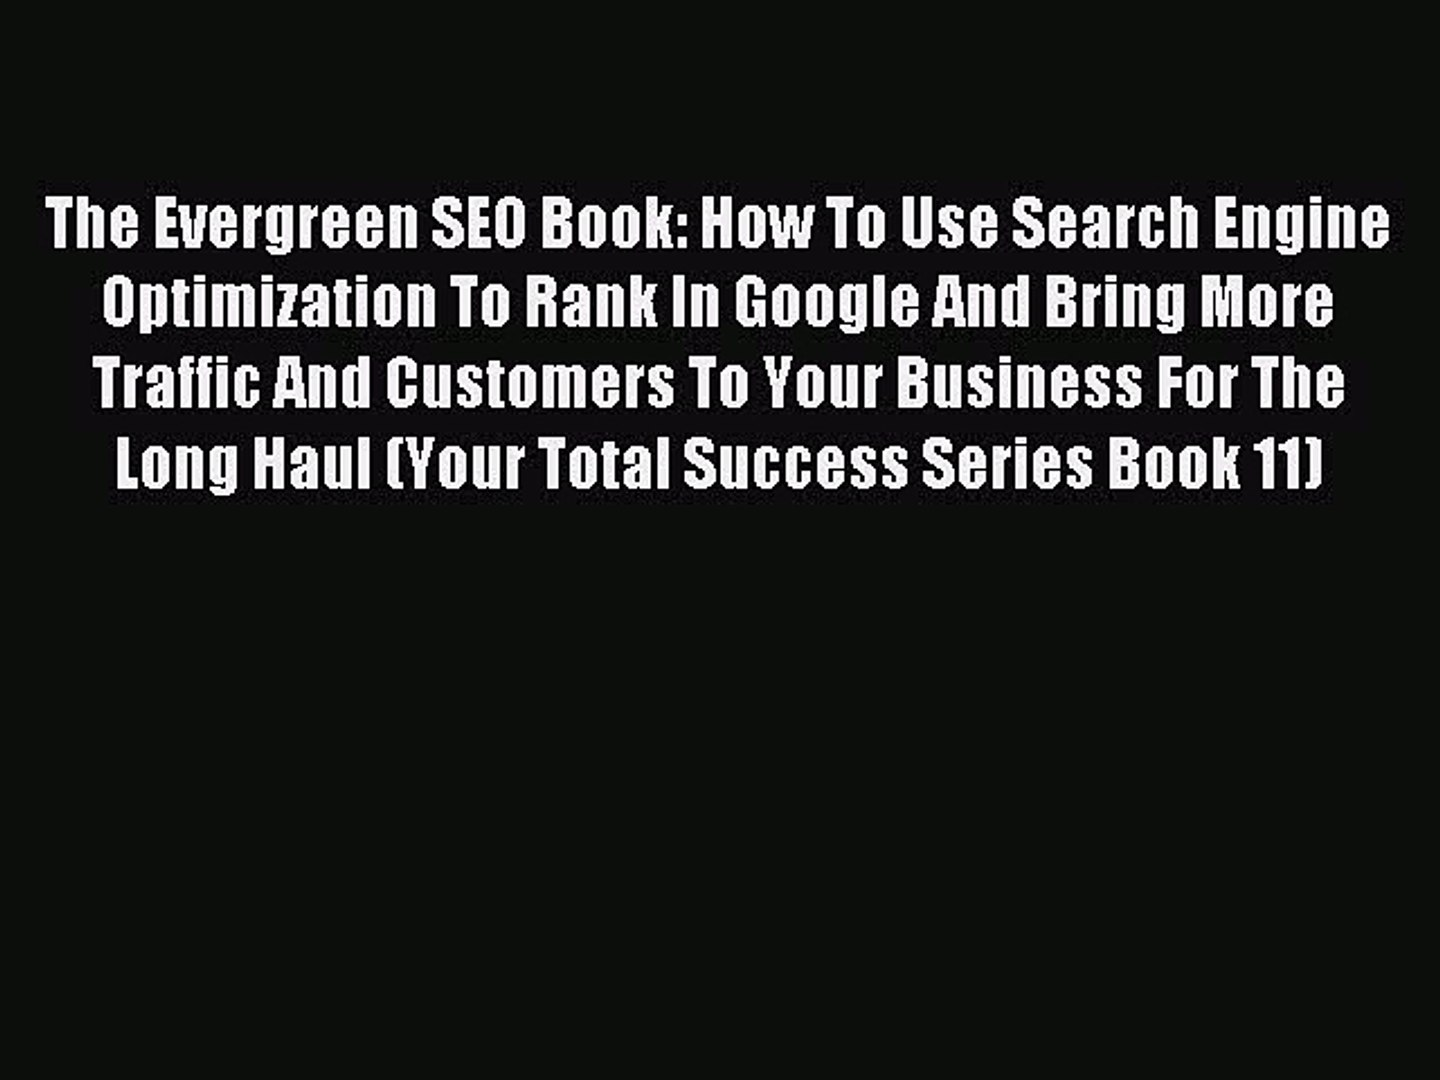 Read The Evergreen SEO Book: How To Use Search Engine Optimization To Rank In Google And Bring